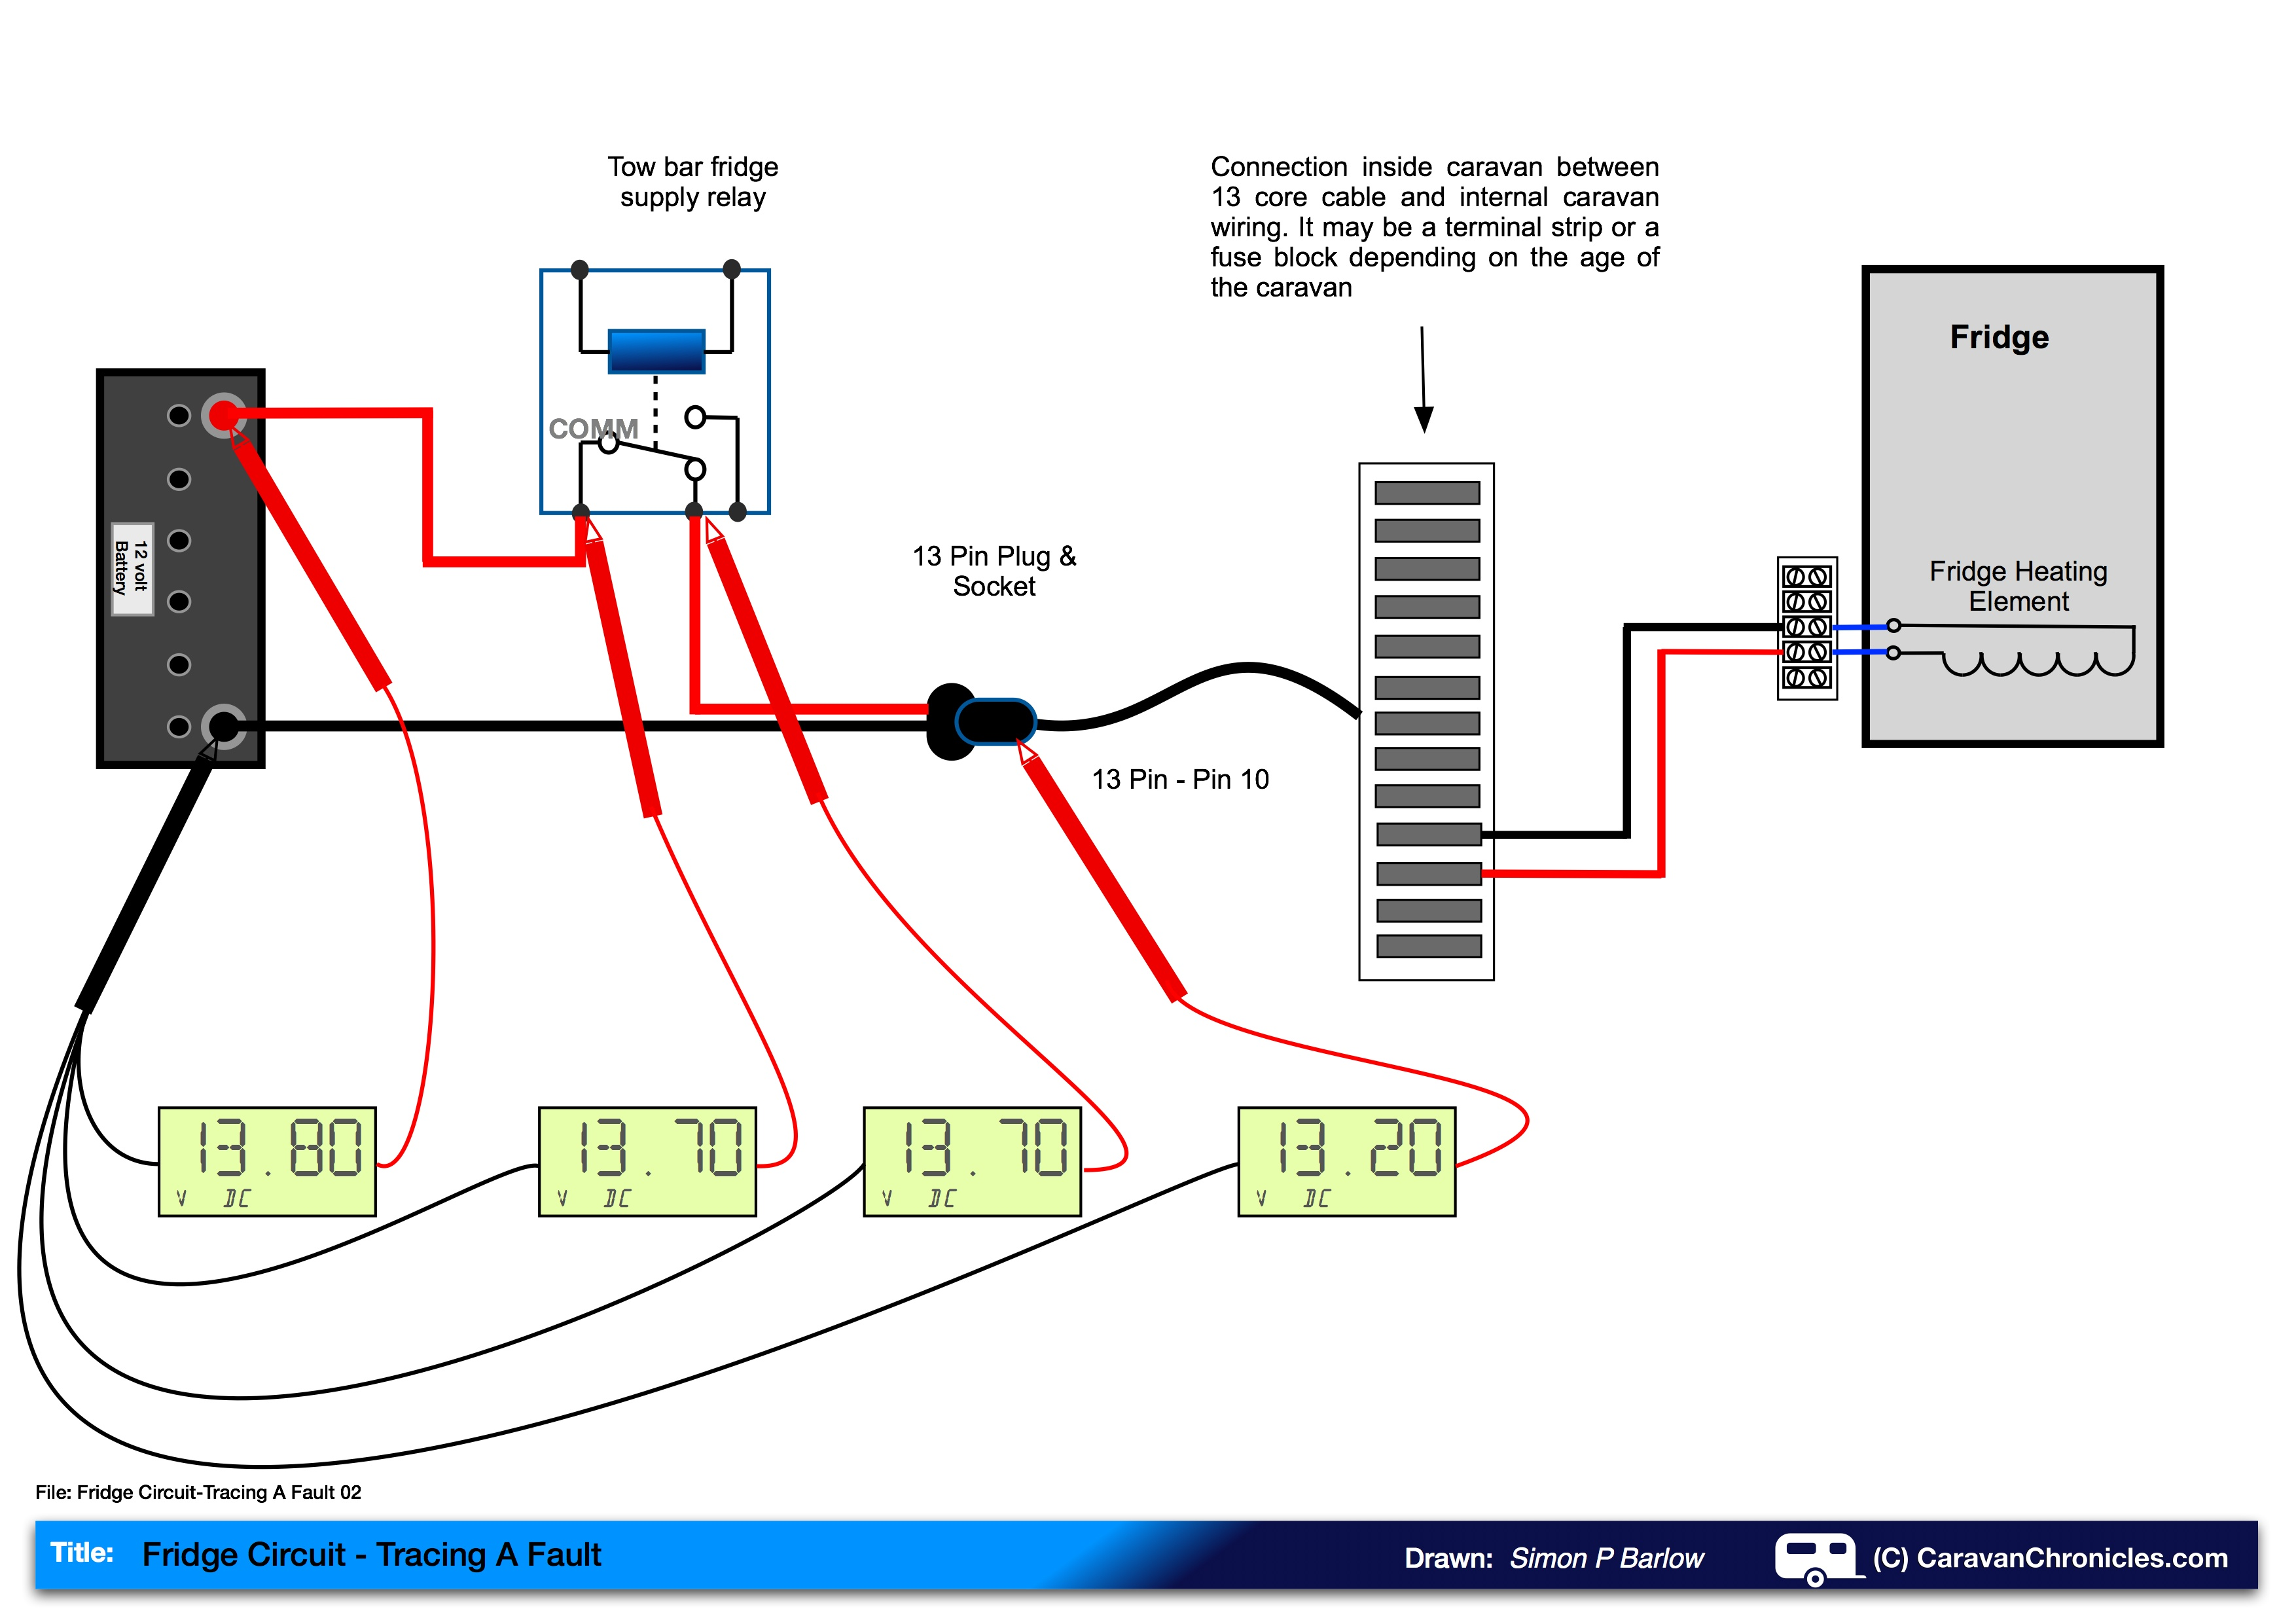 Caravan Fridge Circuit Tracing A Fault on trailer plug in wiring diagram